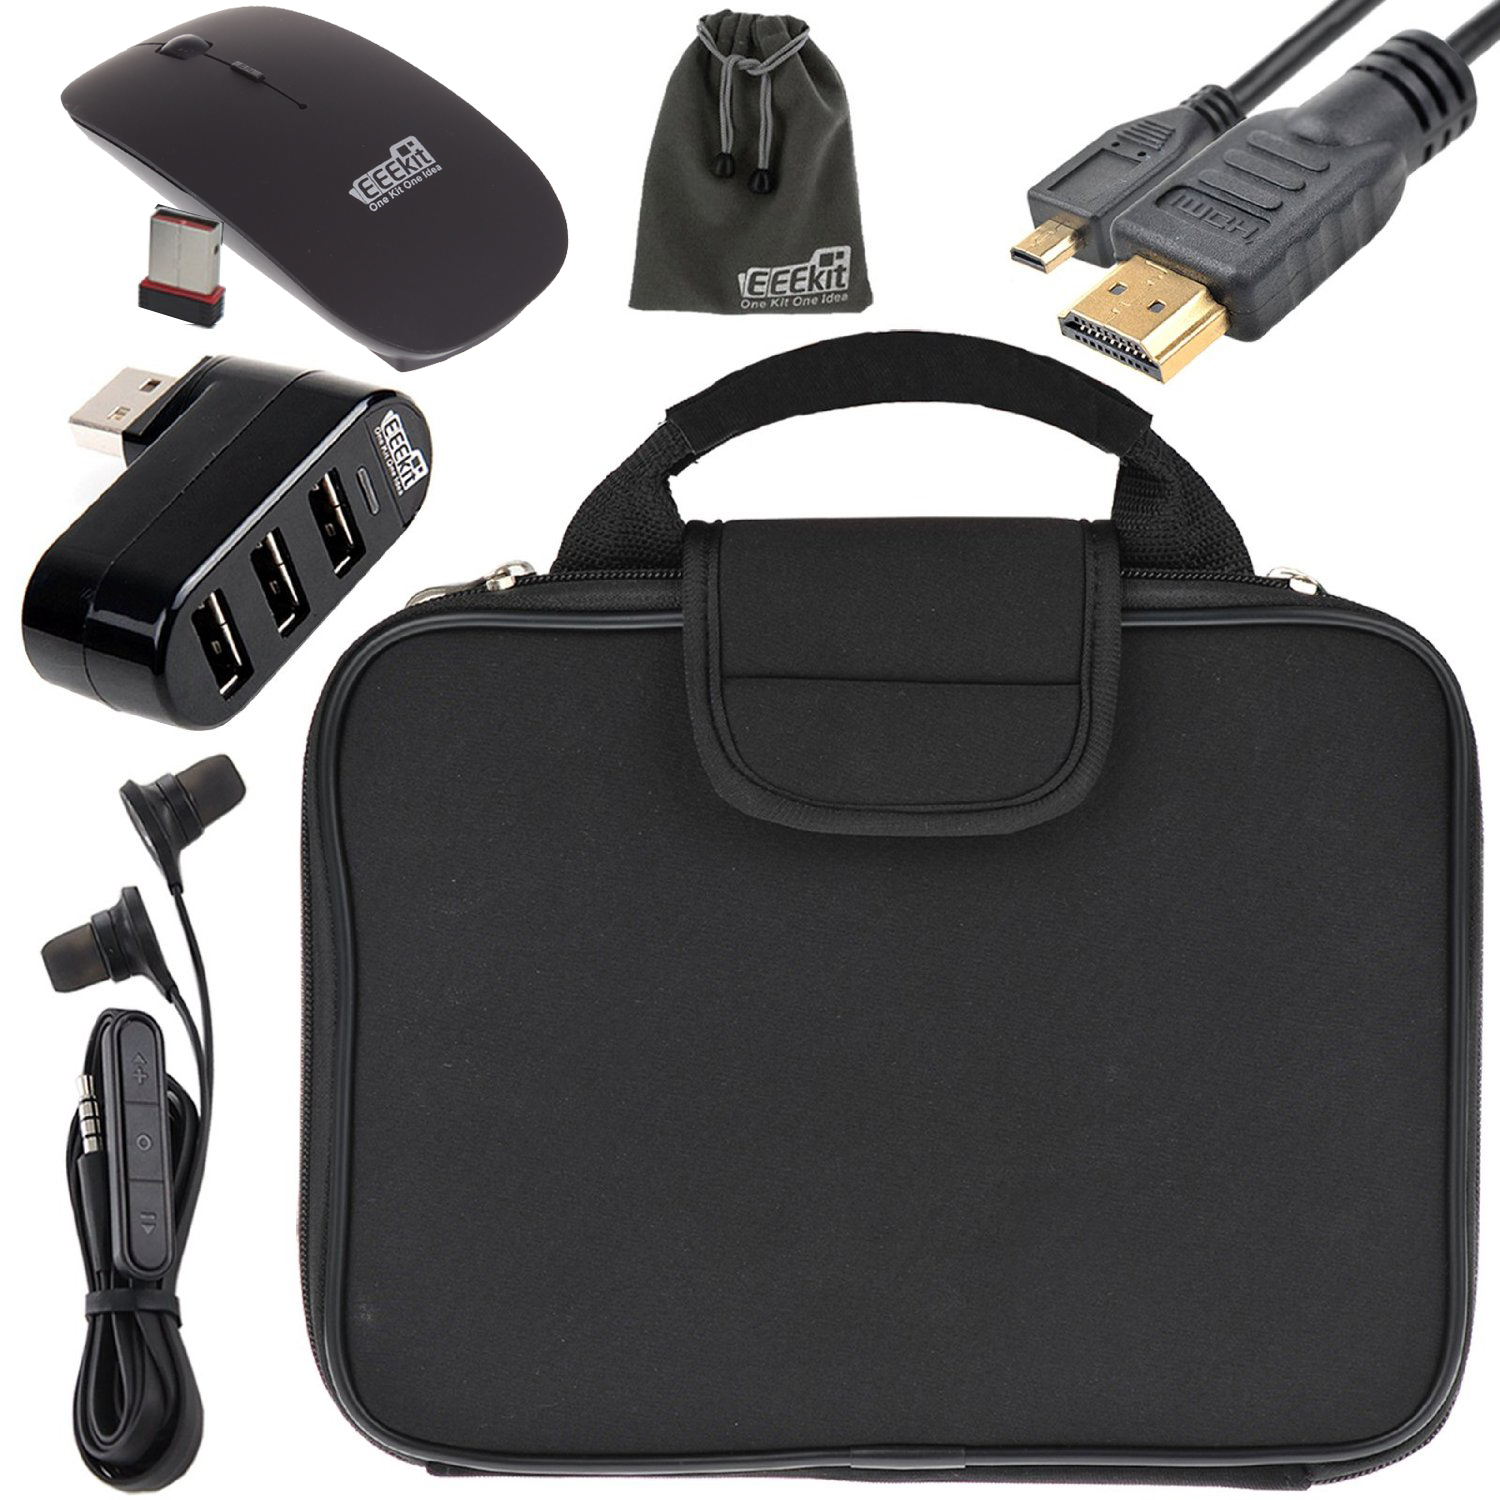 EEEKit for RCA Viking Pro 10.1 Tablet,Sleeve Case Carrying Bag+3 Port USB HUB+2.4G Wireless Mouse+Earphone+Mini HDMI Cab